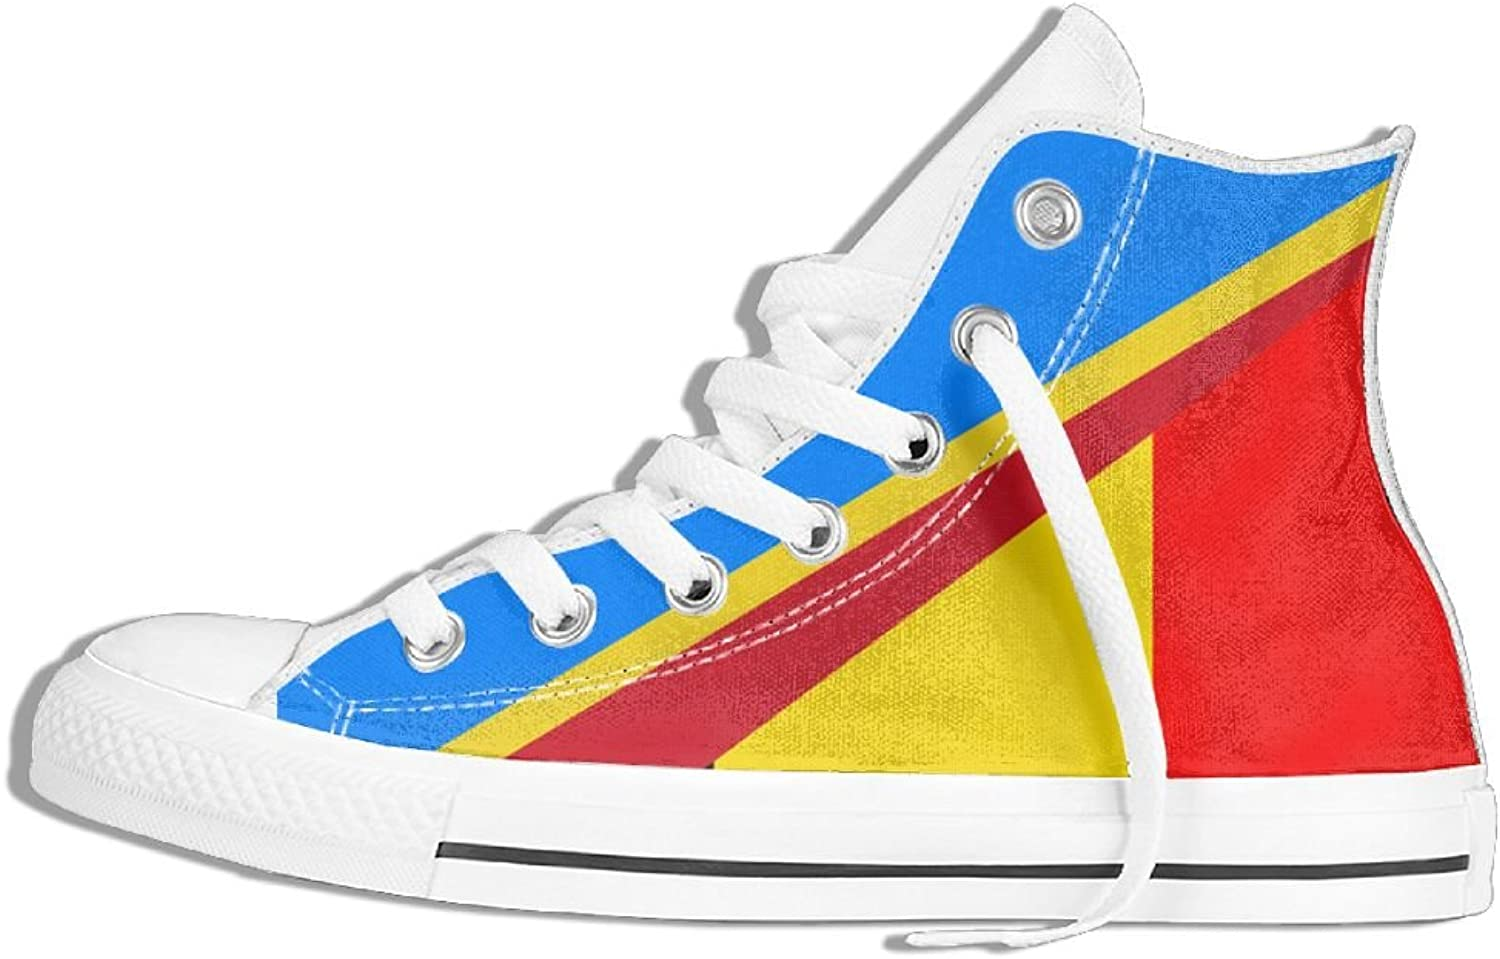 Unisex High Top Sneakers Belgium And Congo Flag Classic Canvas shoes Breathable Sneaker